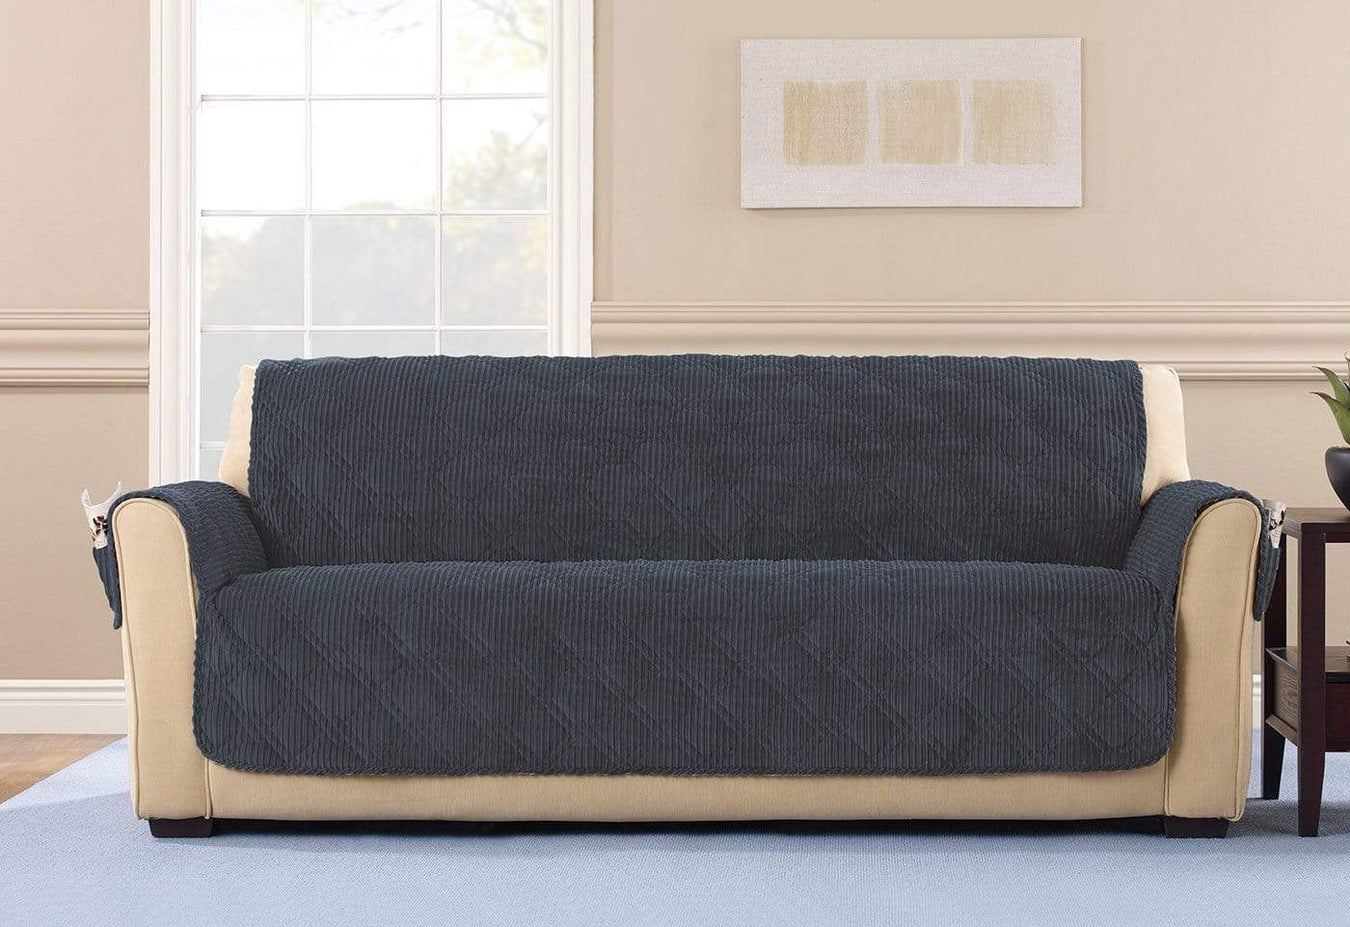 Wide Wale Corduroy Sofa Furniture Cover | SureFit